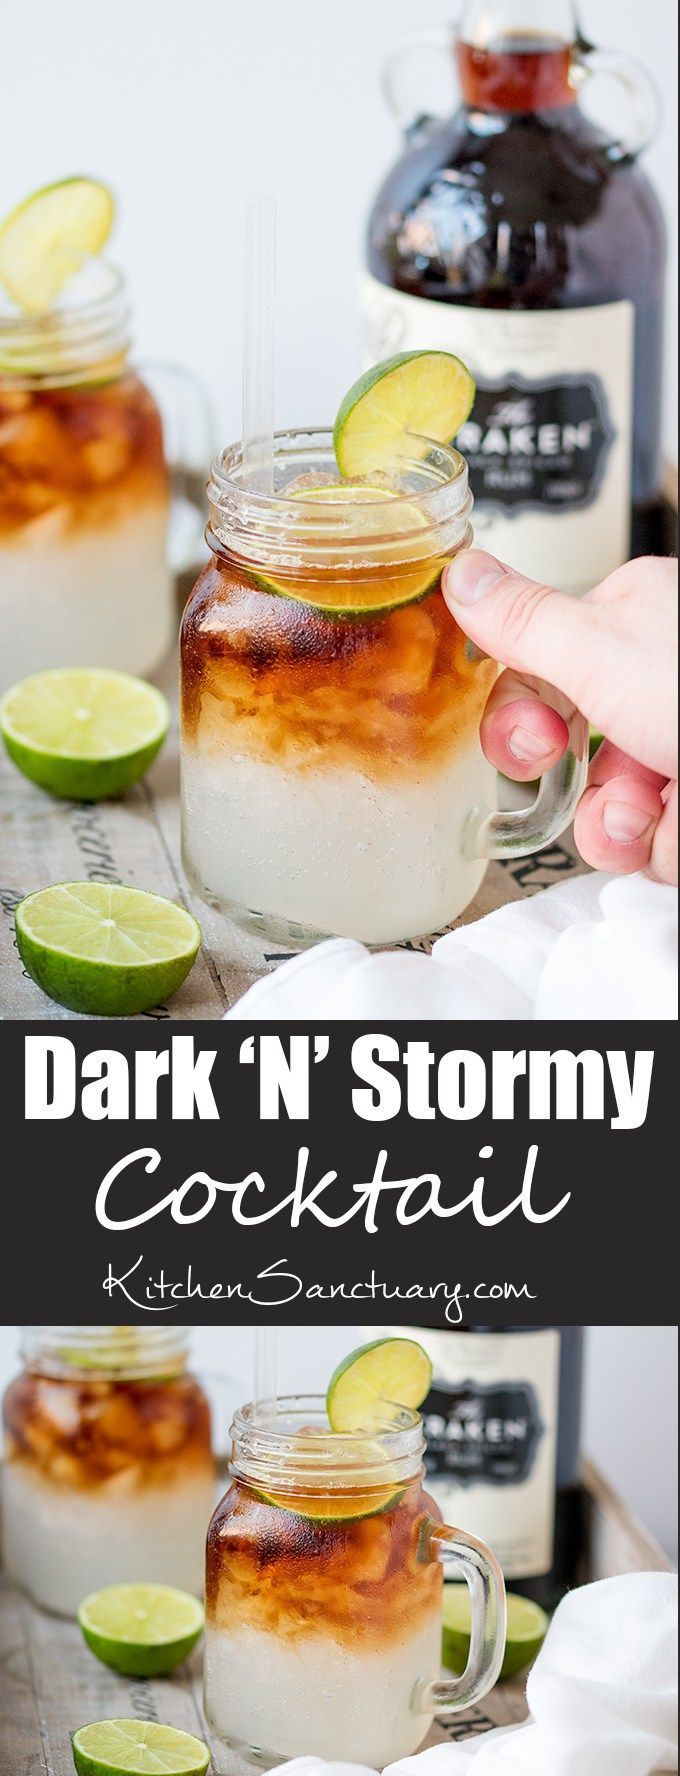 4338 best top uk food blog recipes images on pinterest easy dark n stormy my favourite cocktail easy forumfinder Choice Image